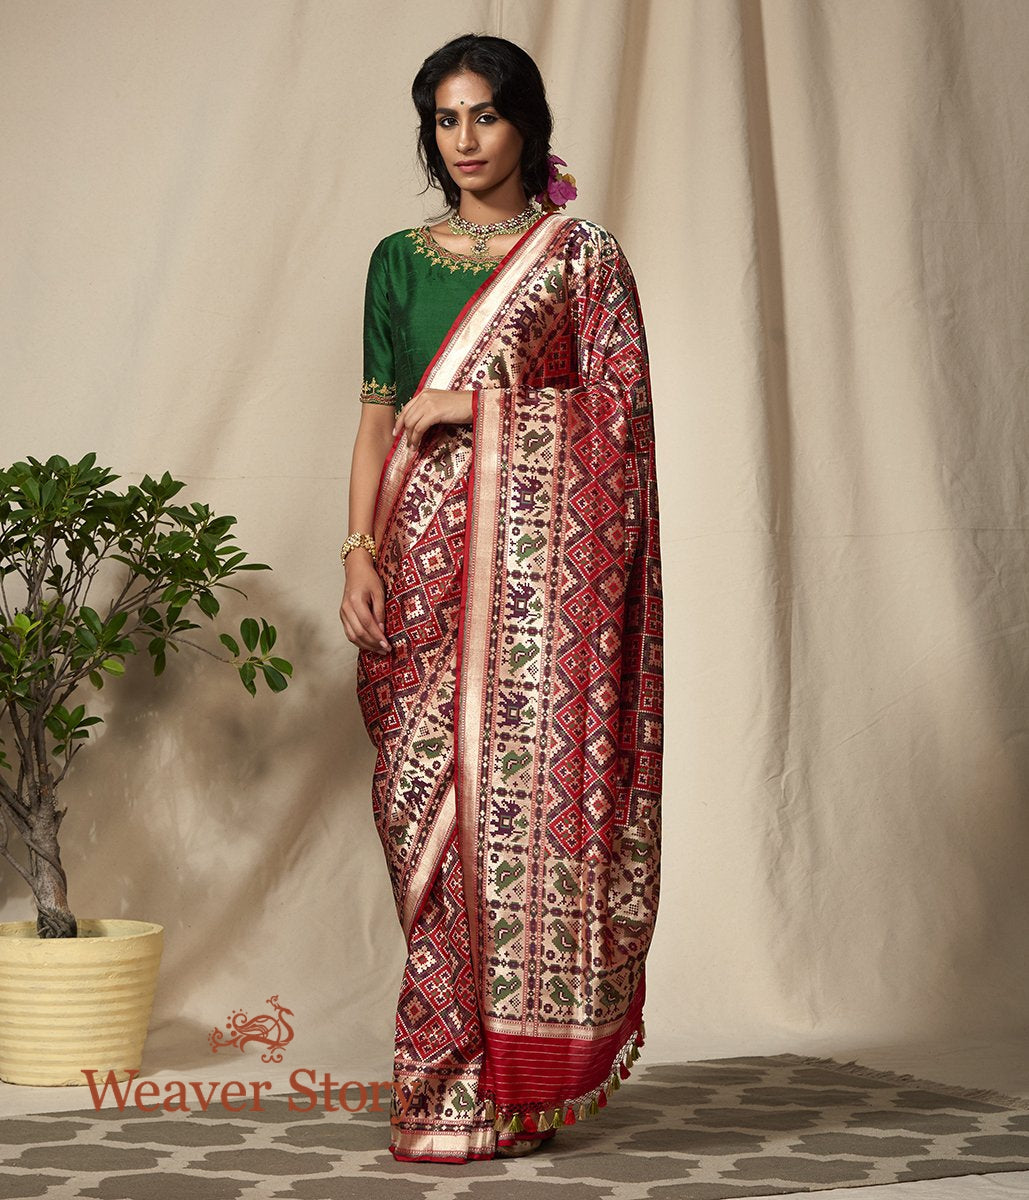 Handwoven Red and Green Meenakari Banarasi Patola Saree